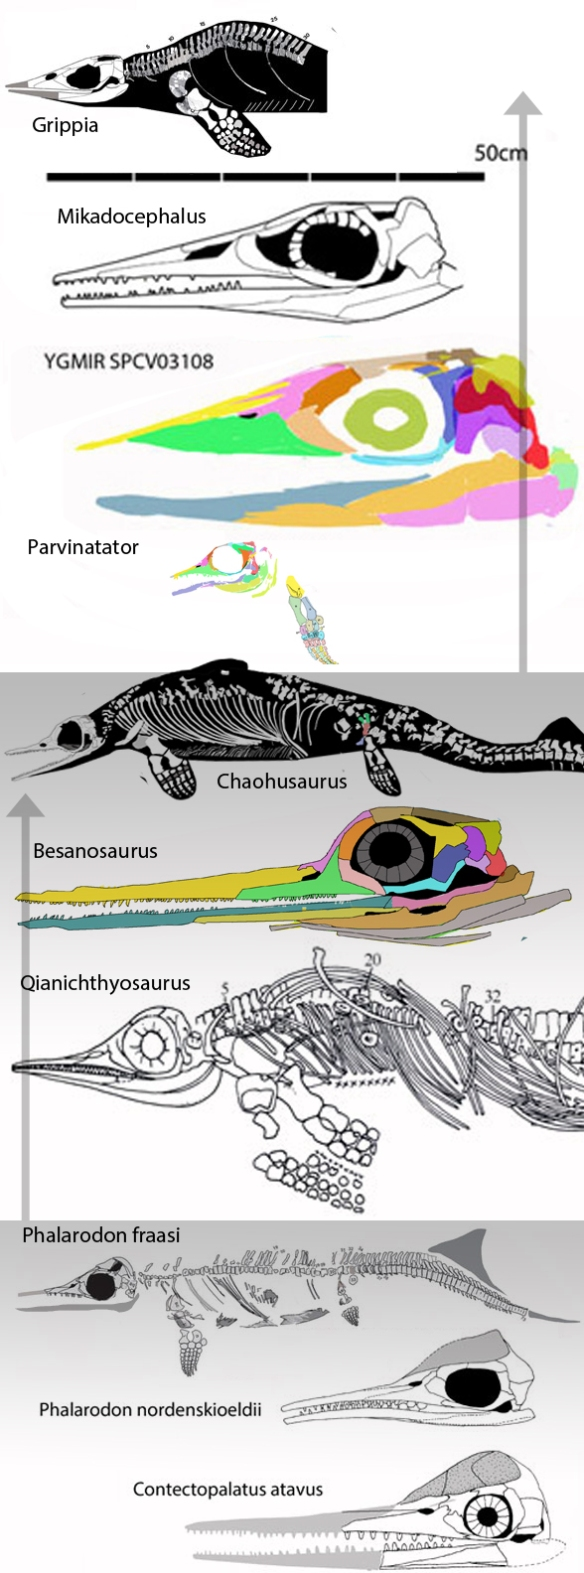 Figure 3. Members from three clades within Ichthyosauria.